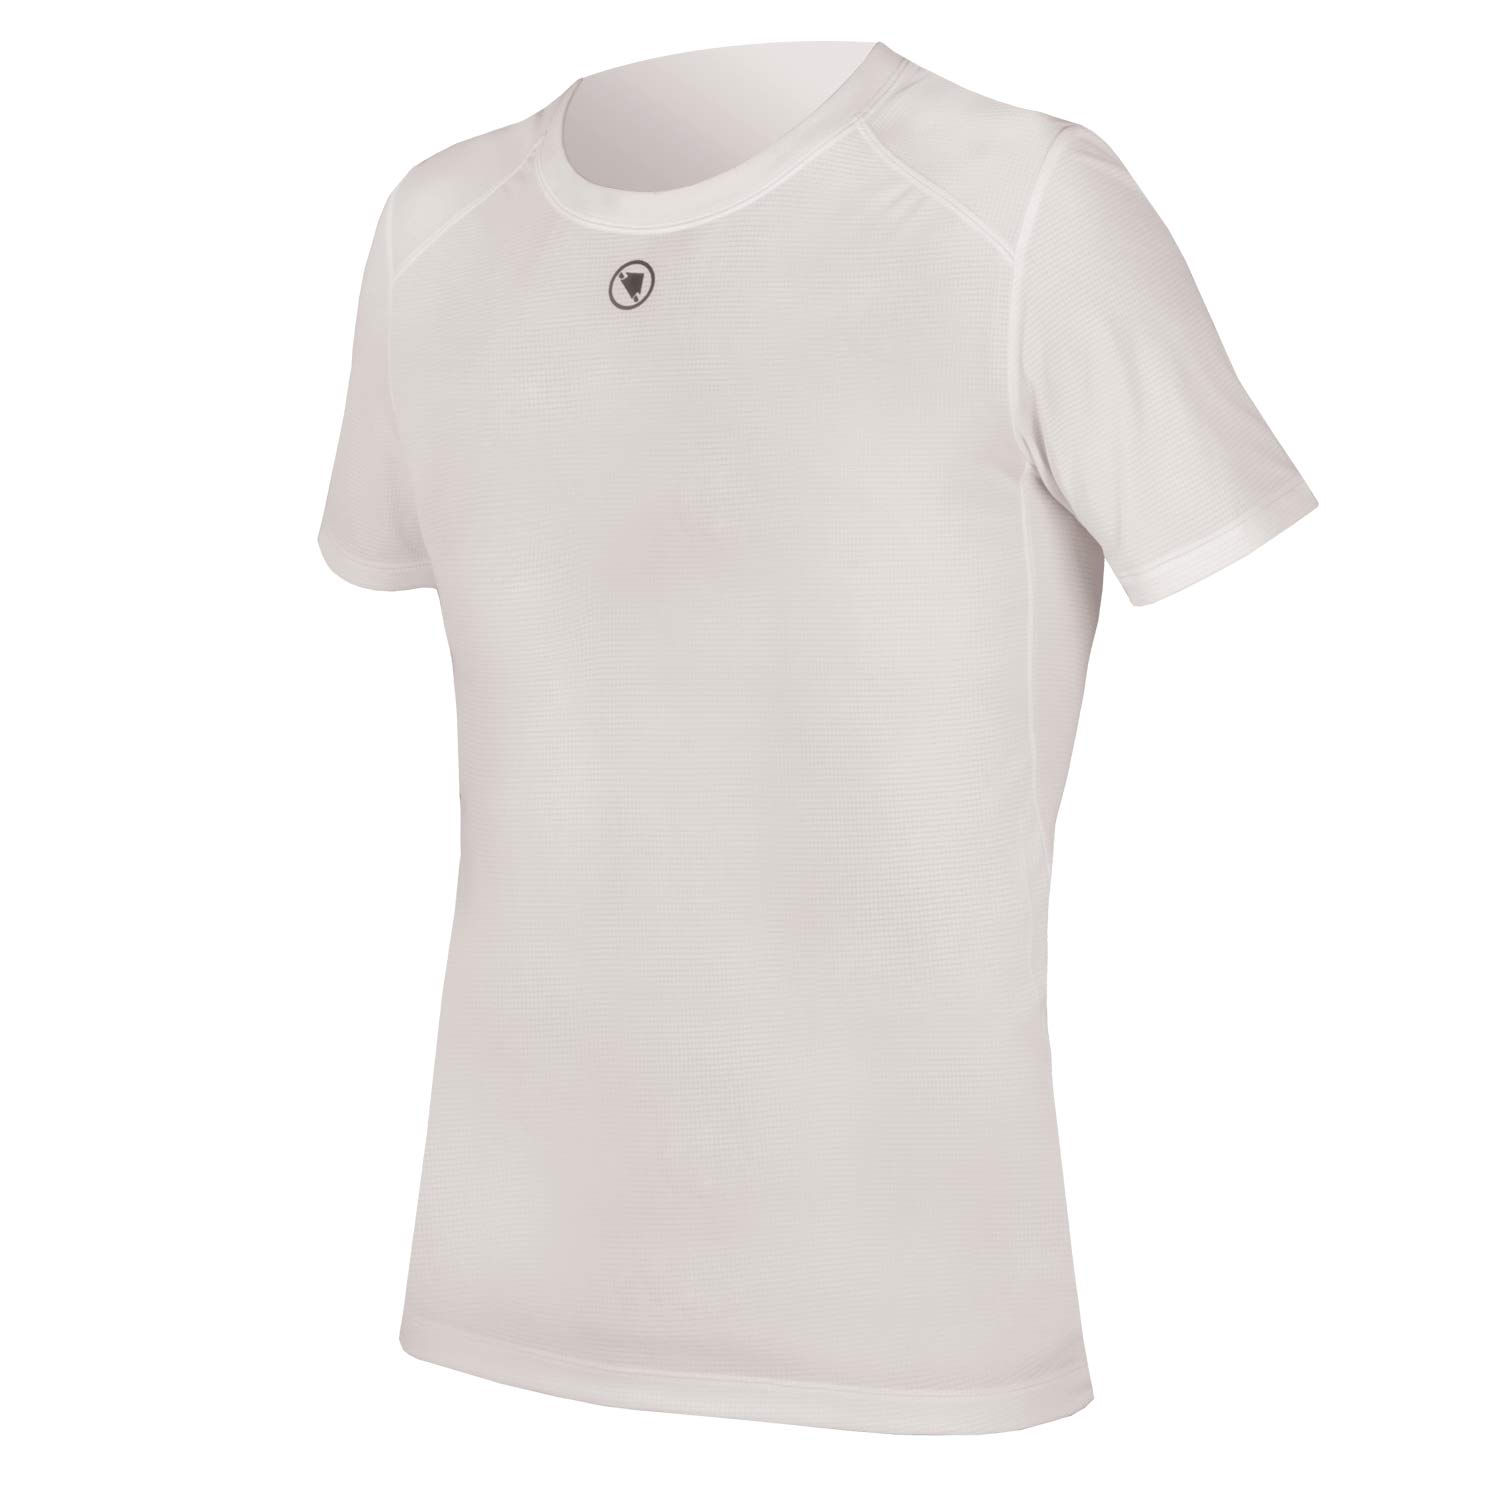 Translite S/S Baselayer White